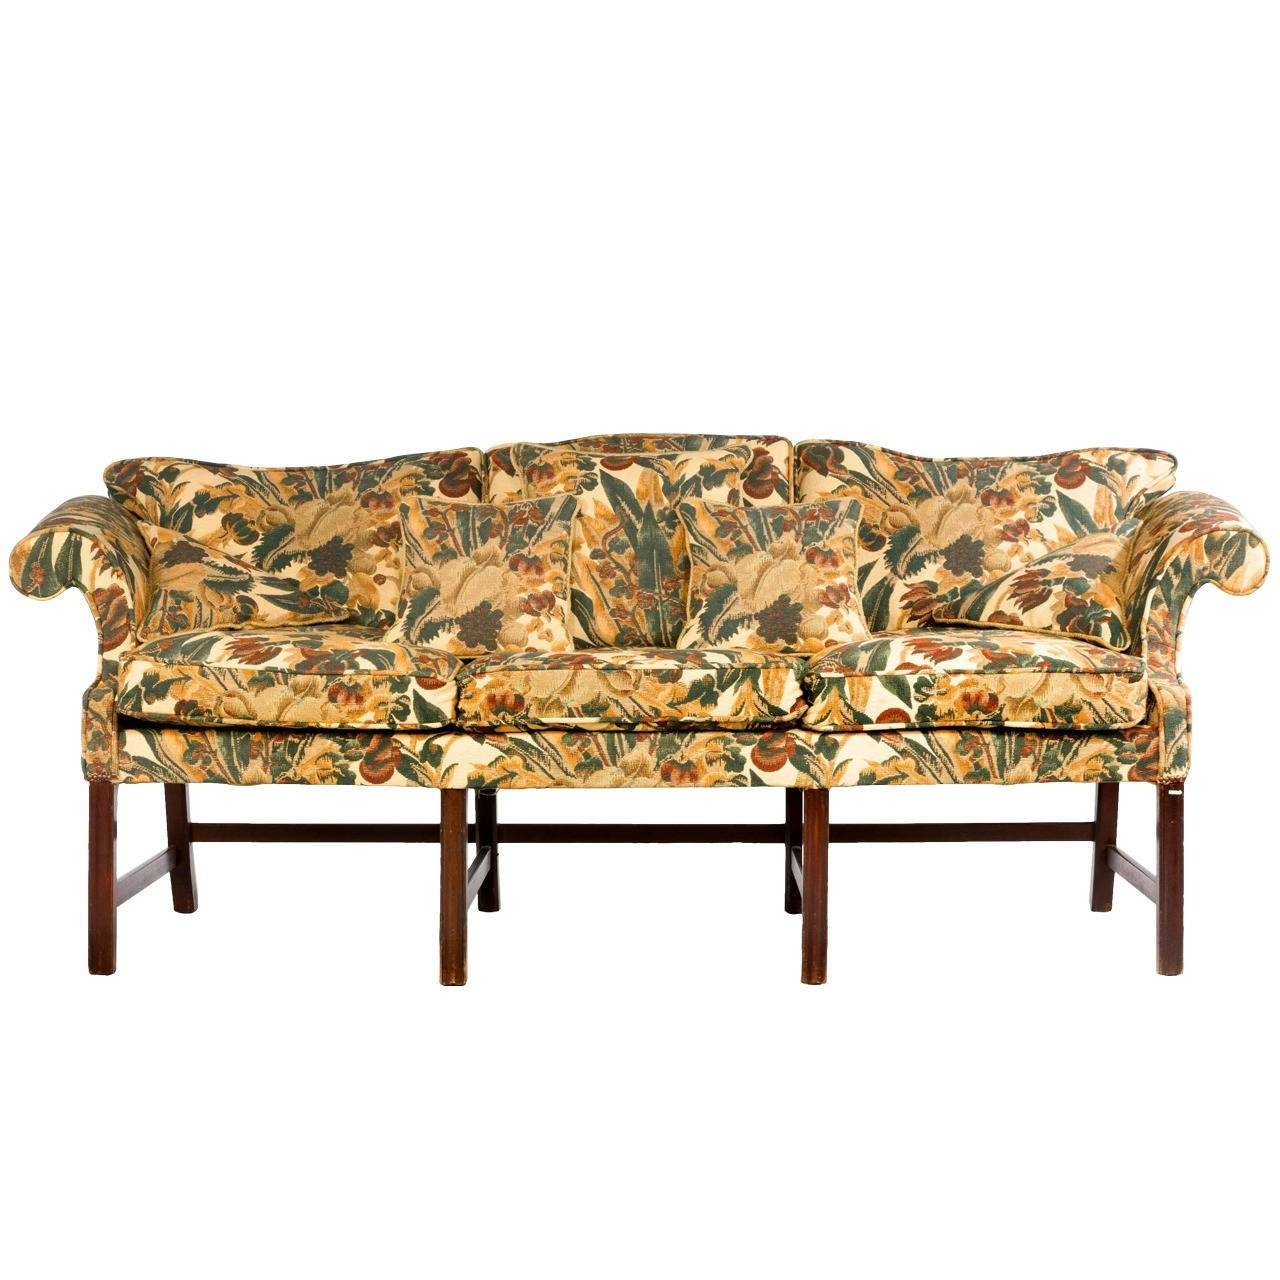 Chippendale Period Camel Back Sofa For Sale At 1Stdibs in Chippendale Camelback Sofas (Image 7 of 15)